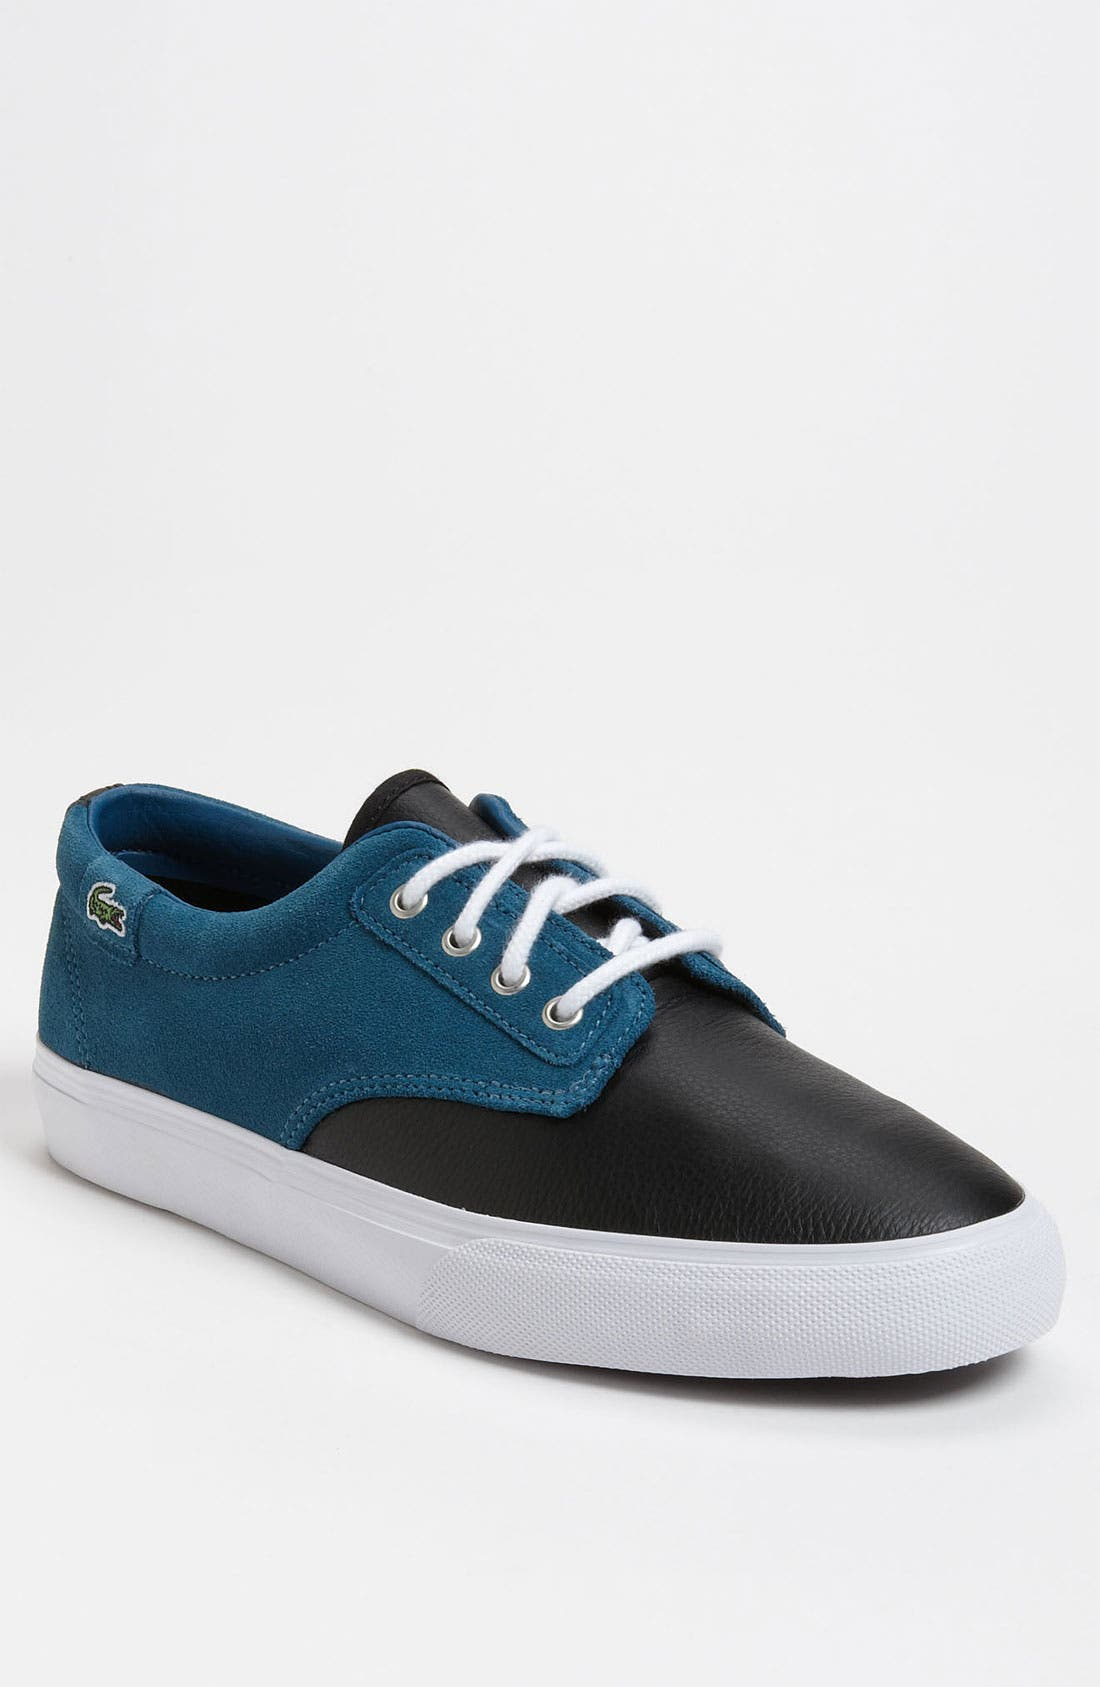 Main Image - Lacoste 'Barbados LMS' Sneaker